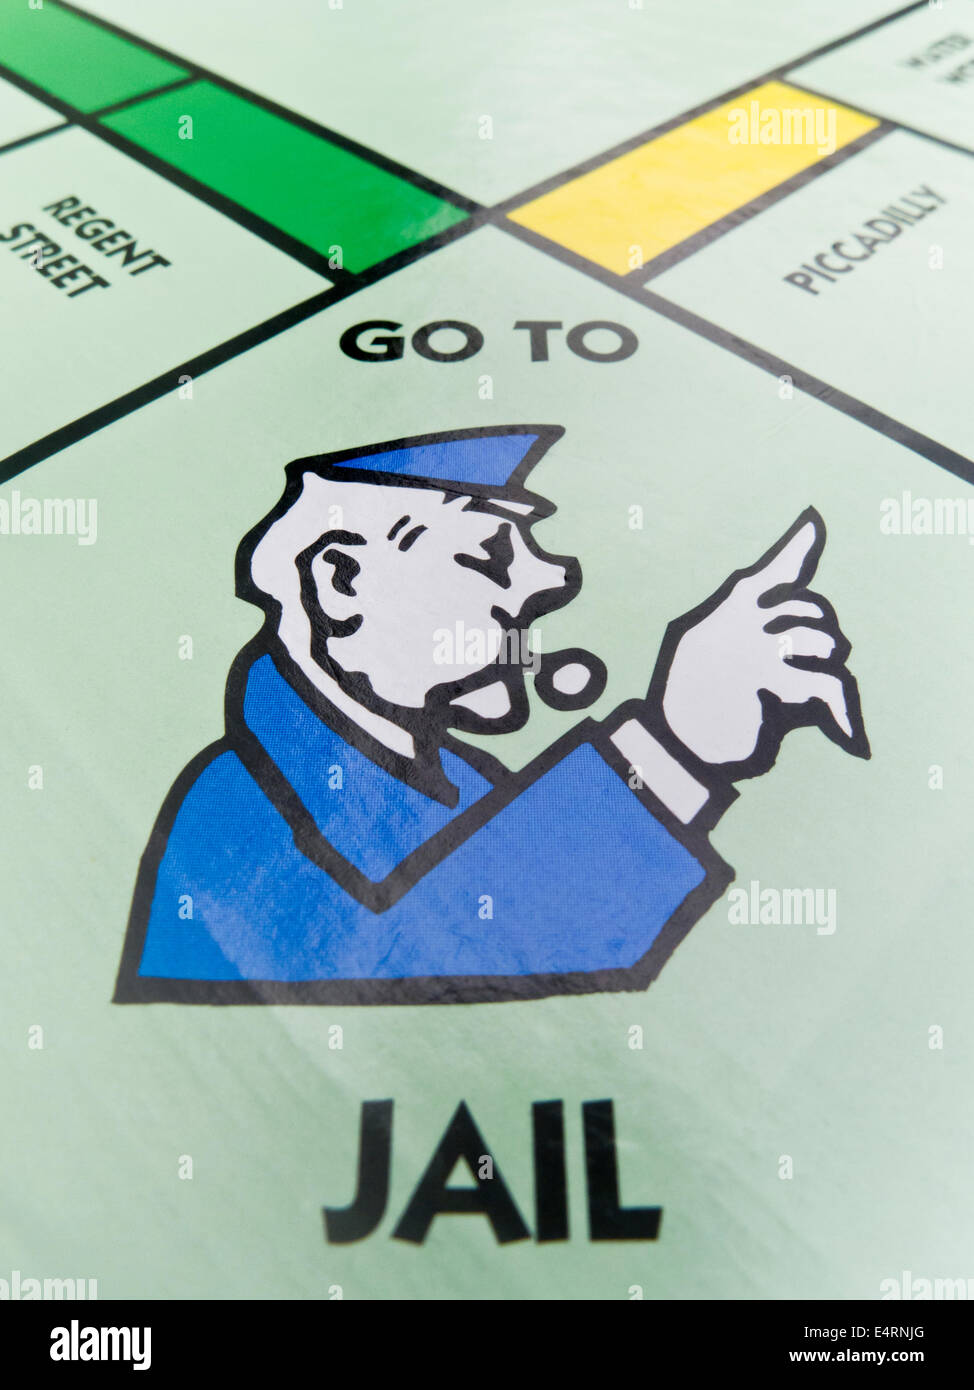 The 'GO TO JAIL' square on a Monopoly board. - Stock Image